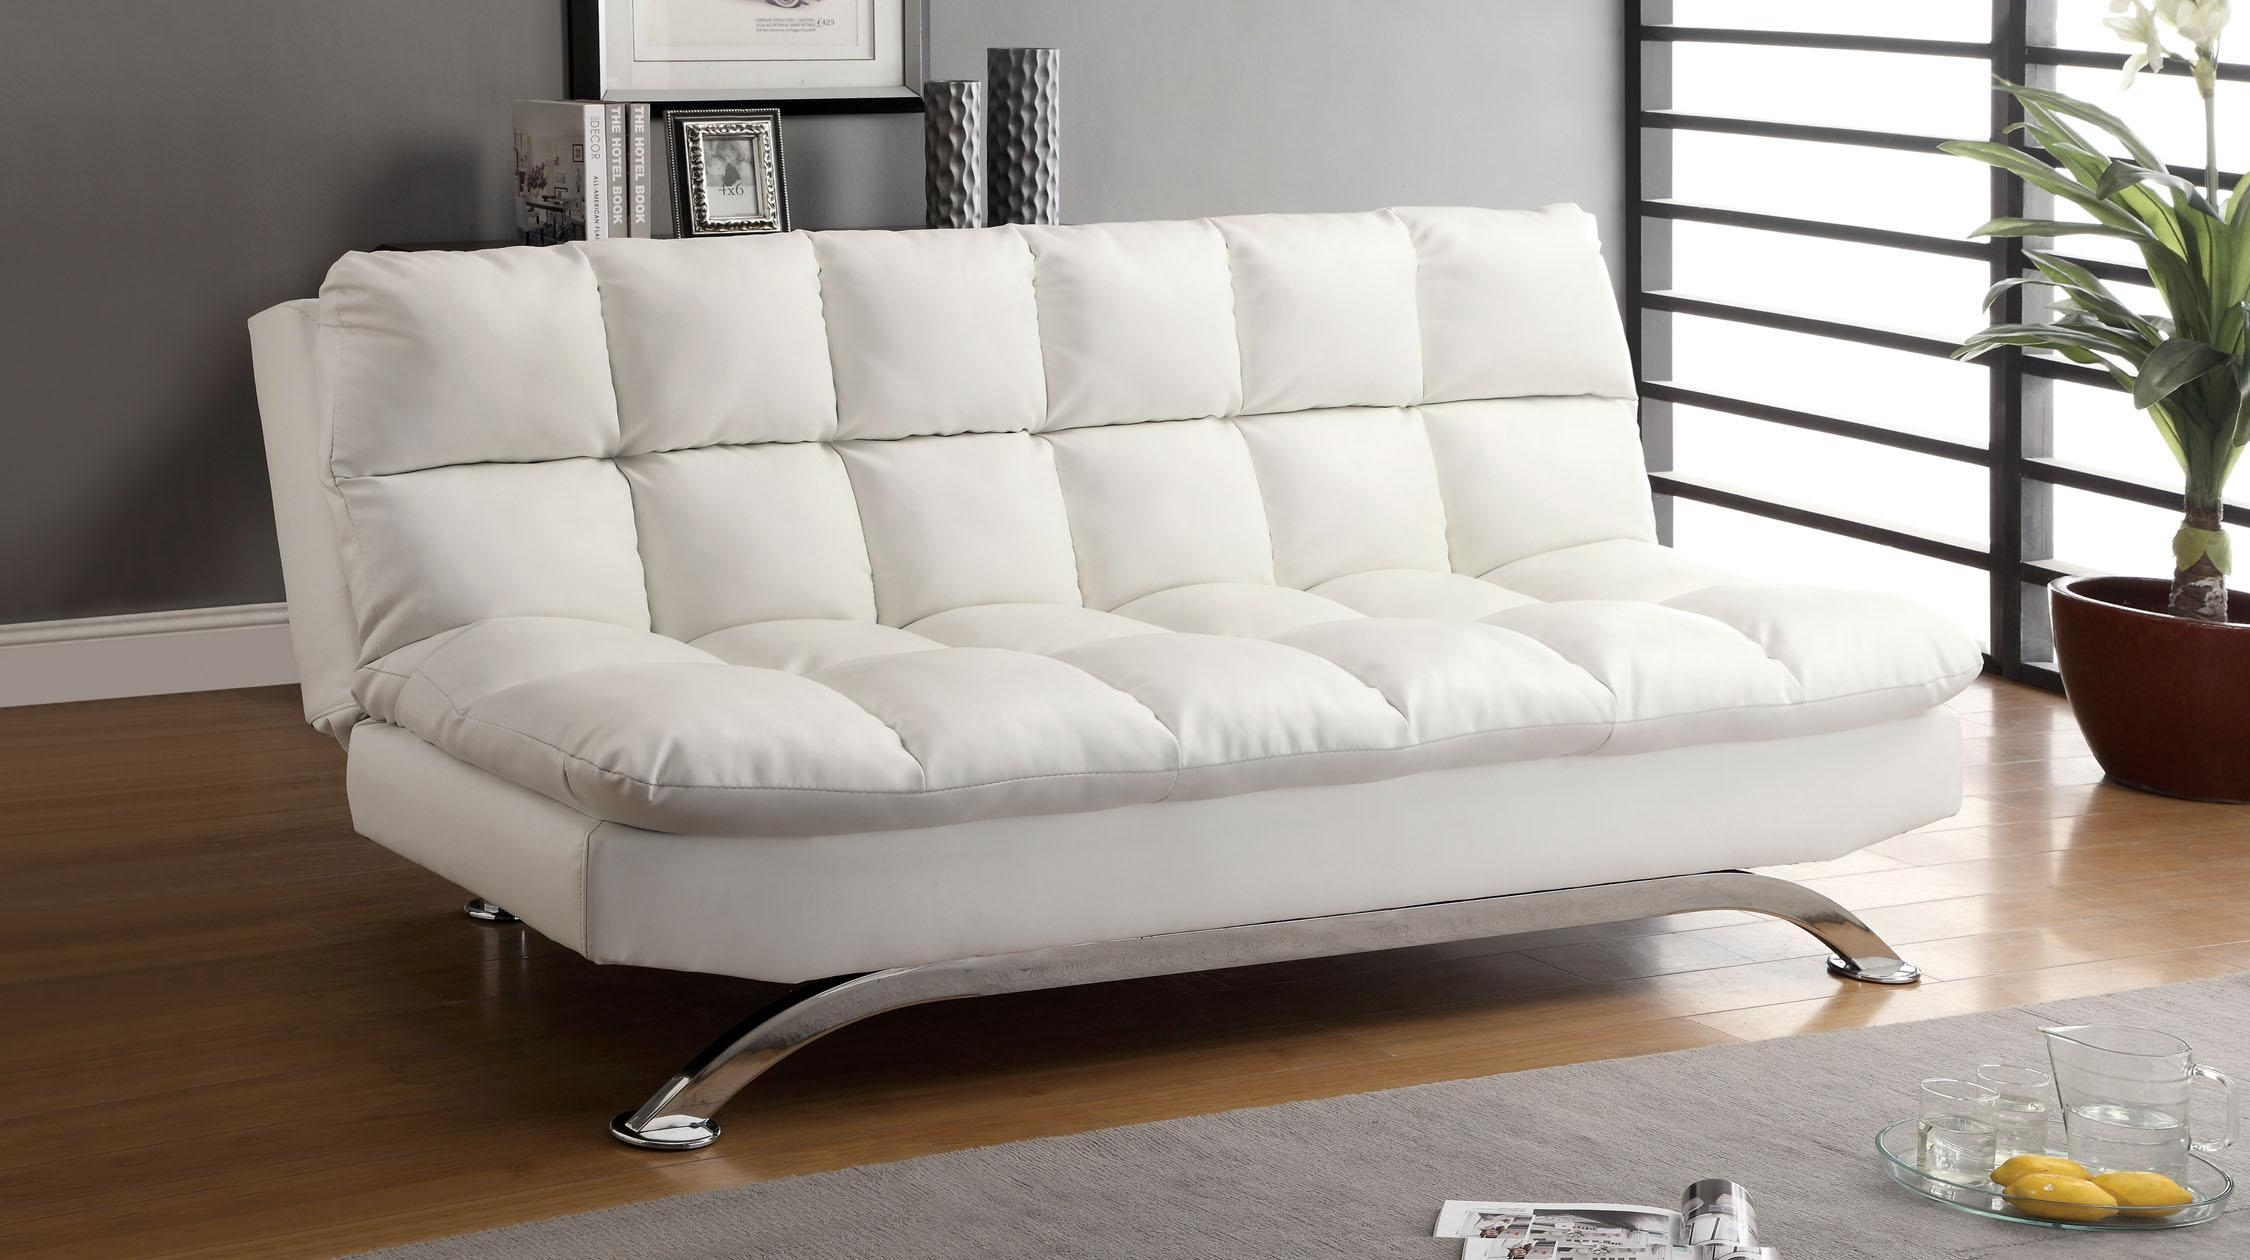 Convertible Sofa Futon | Tehranmix Decoration For Convertible Sofa Chair Bed (View 11 of 20)